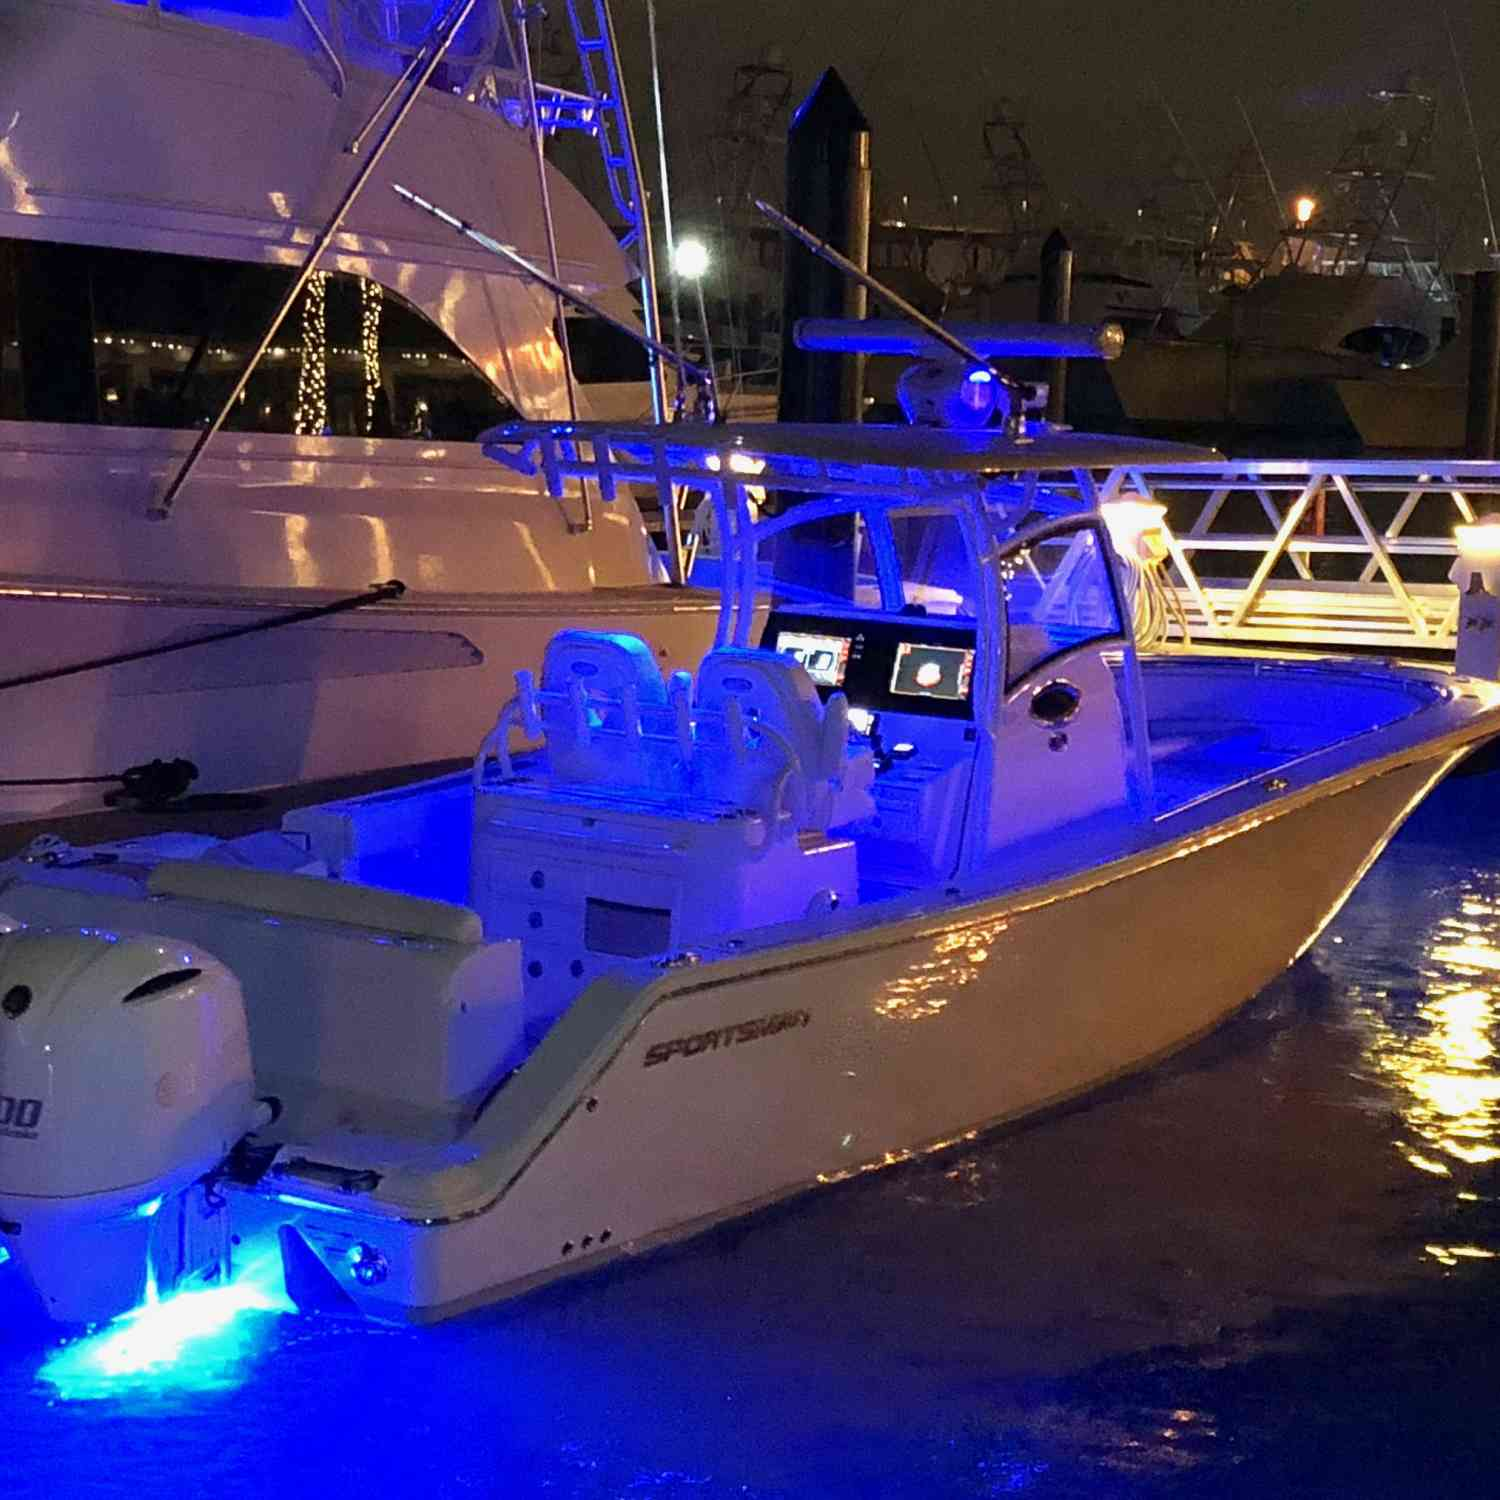 Title: best looking boat at night - On board their Sportsman Open 312 Center Console - Location: Reviera Beach, FL. Participating in the Photo Contest #SportsmanSeptember2018